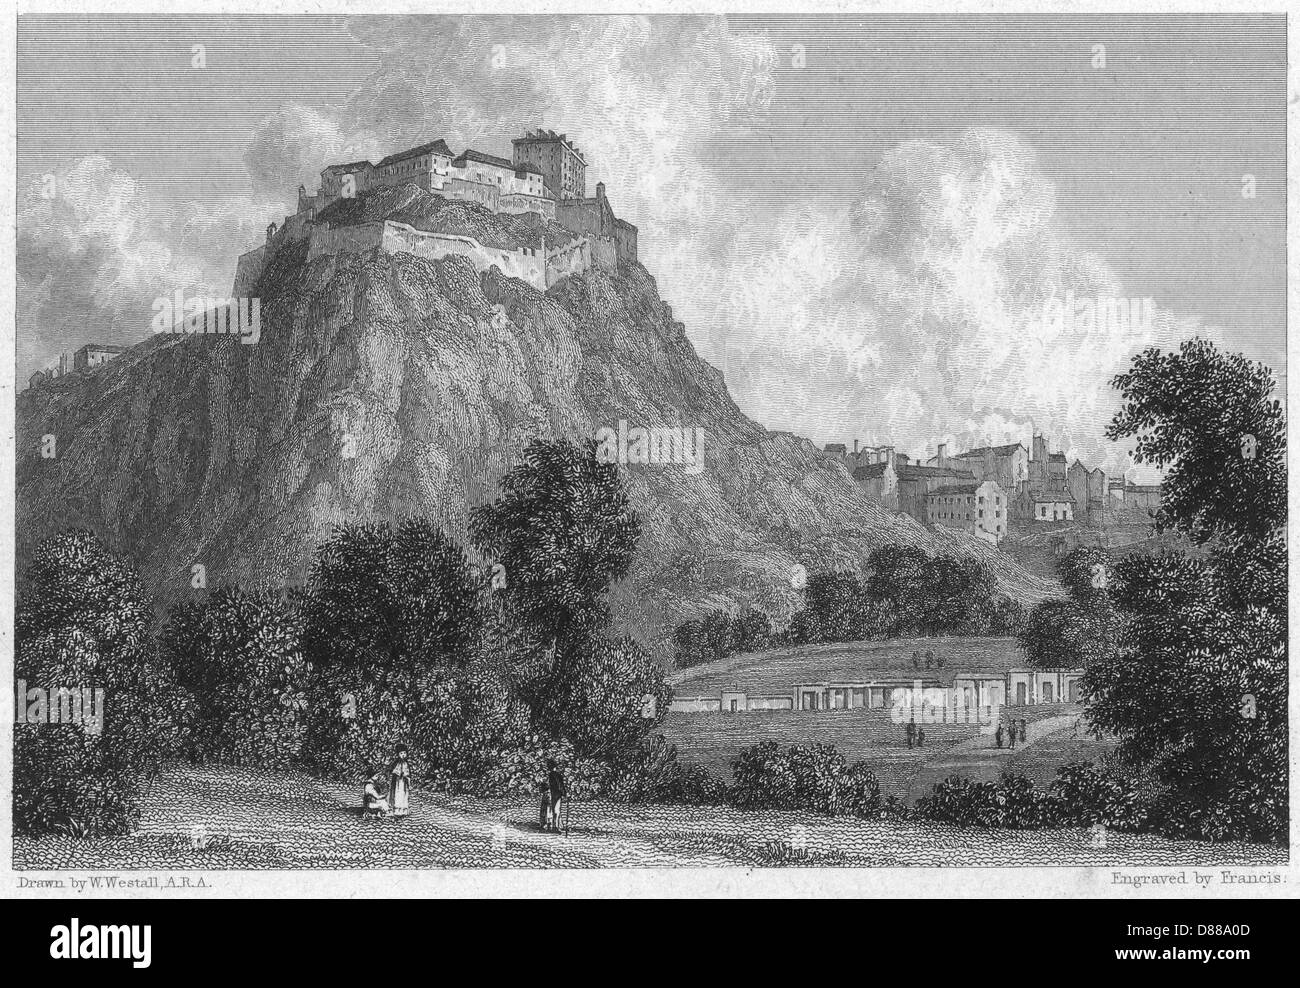 Edinburgh Castle 1830 - Stock Image